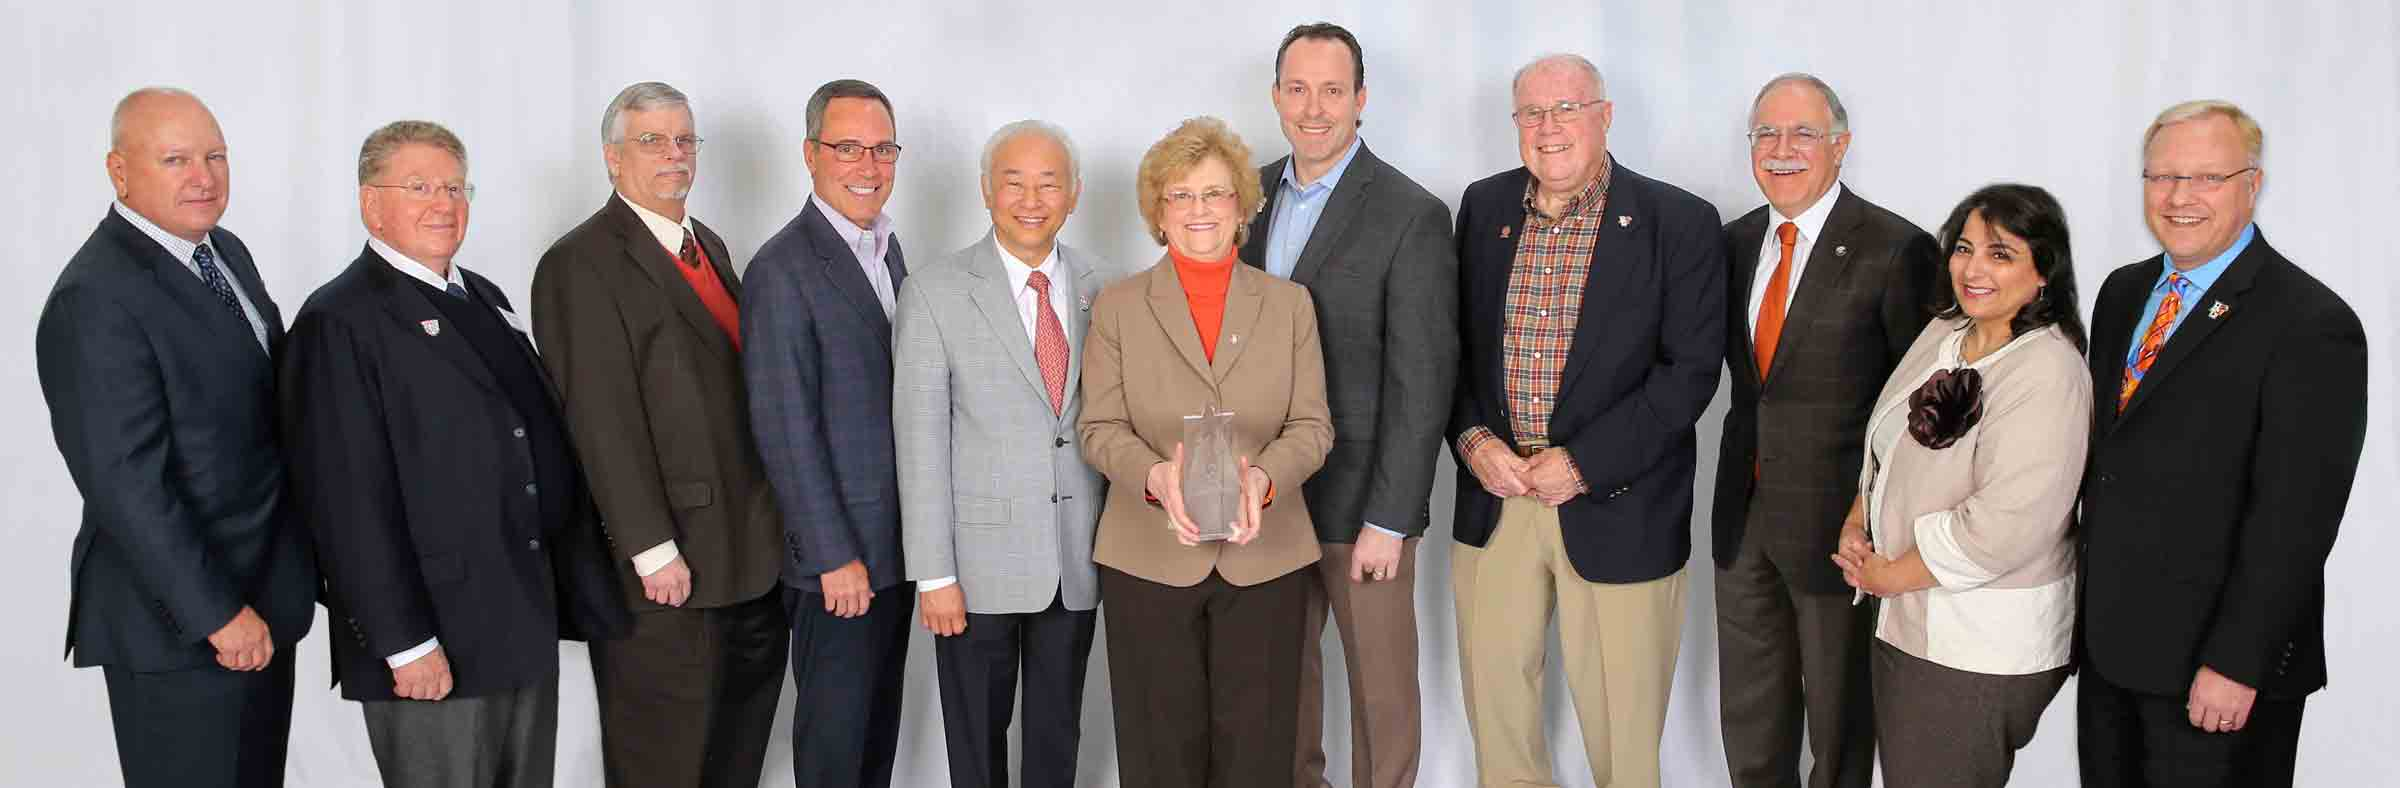 Congratulations to the 10 outstanding recipients of the College Alumni Award!